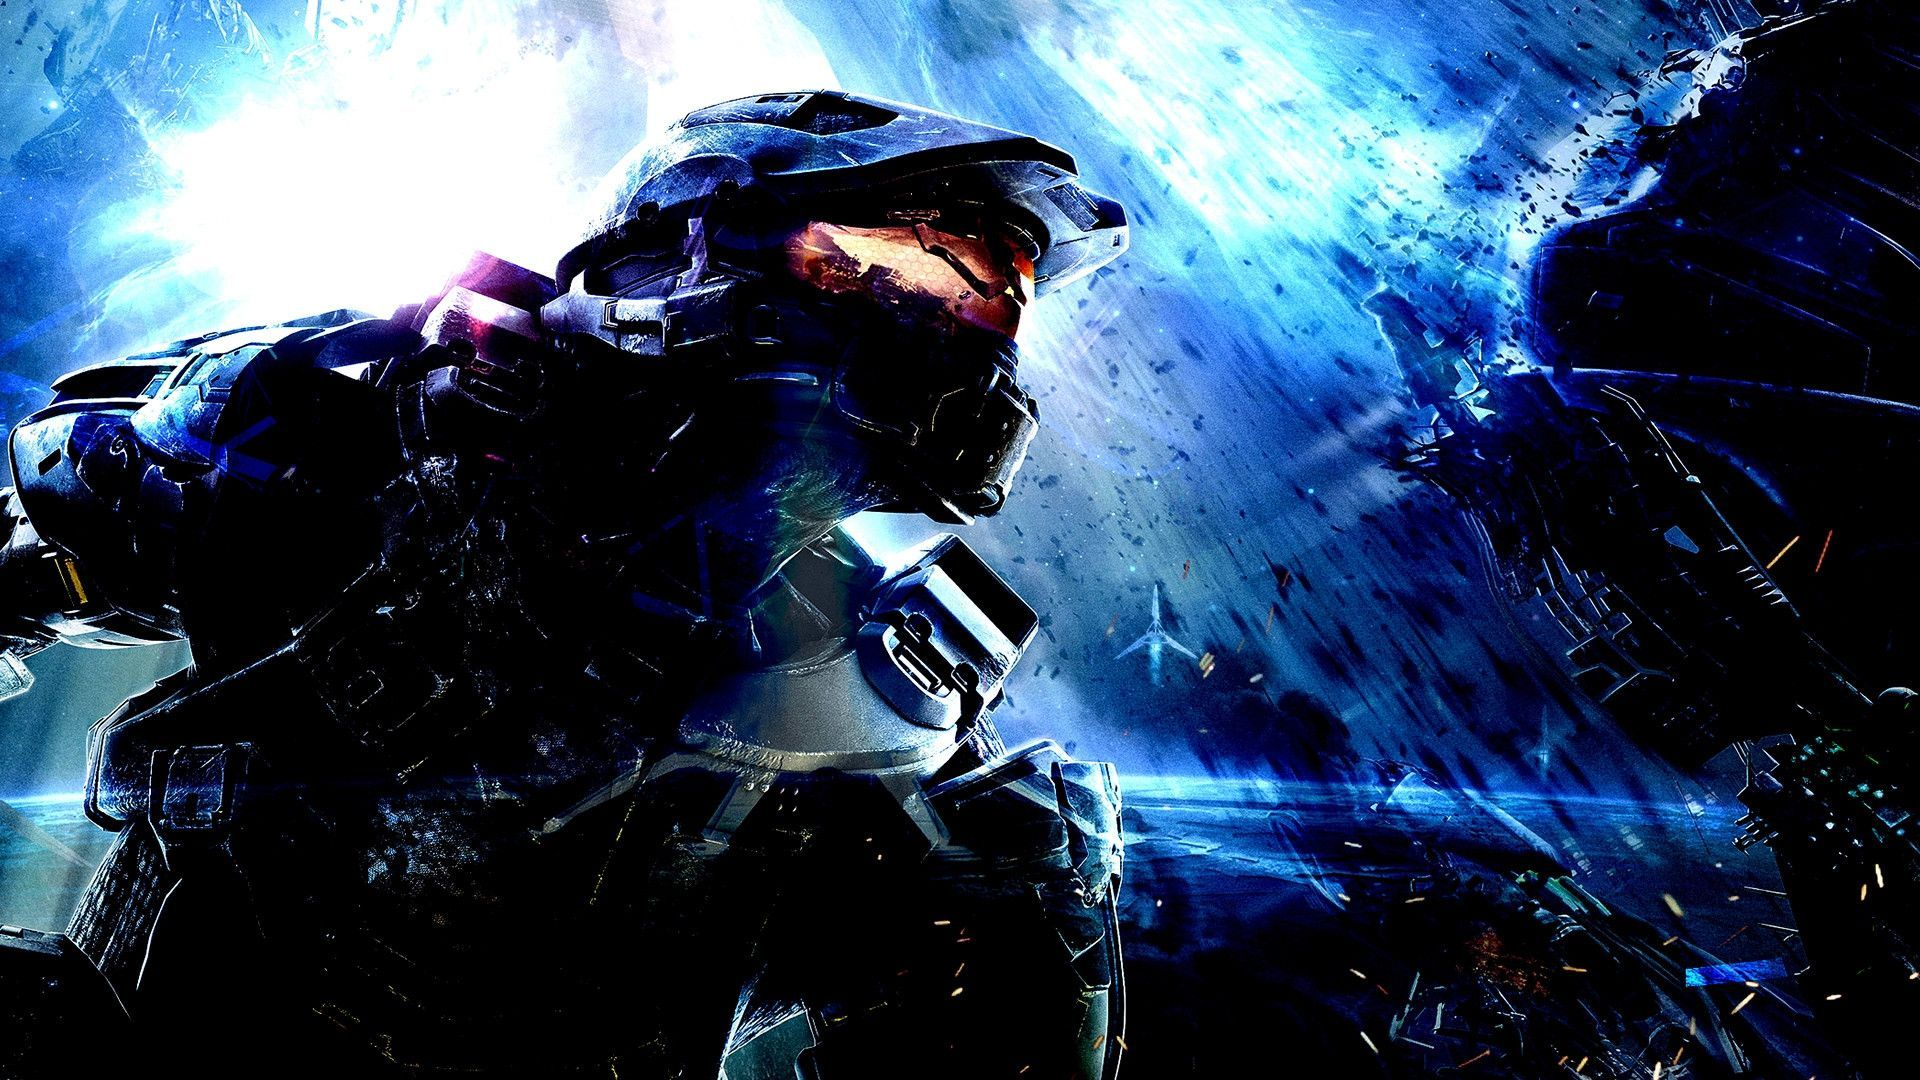 HALO HD Wallpapers and Backgrounds 1920×1080 Halo wallpaper (35 Wallpapers) | Adorable Wallpapers